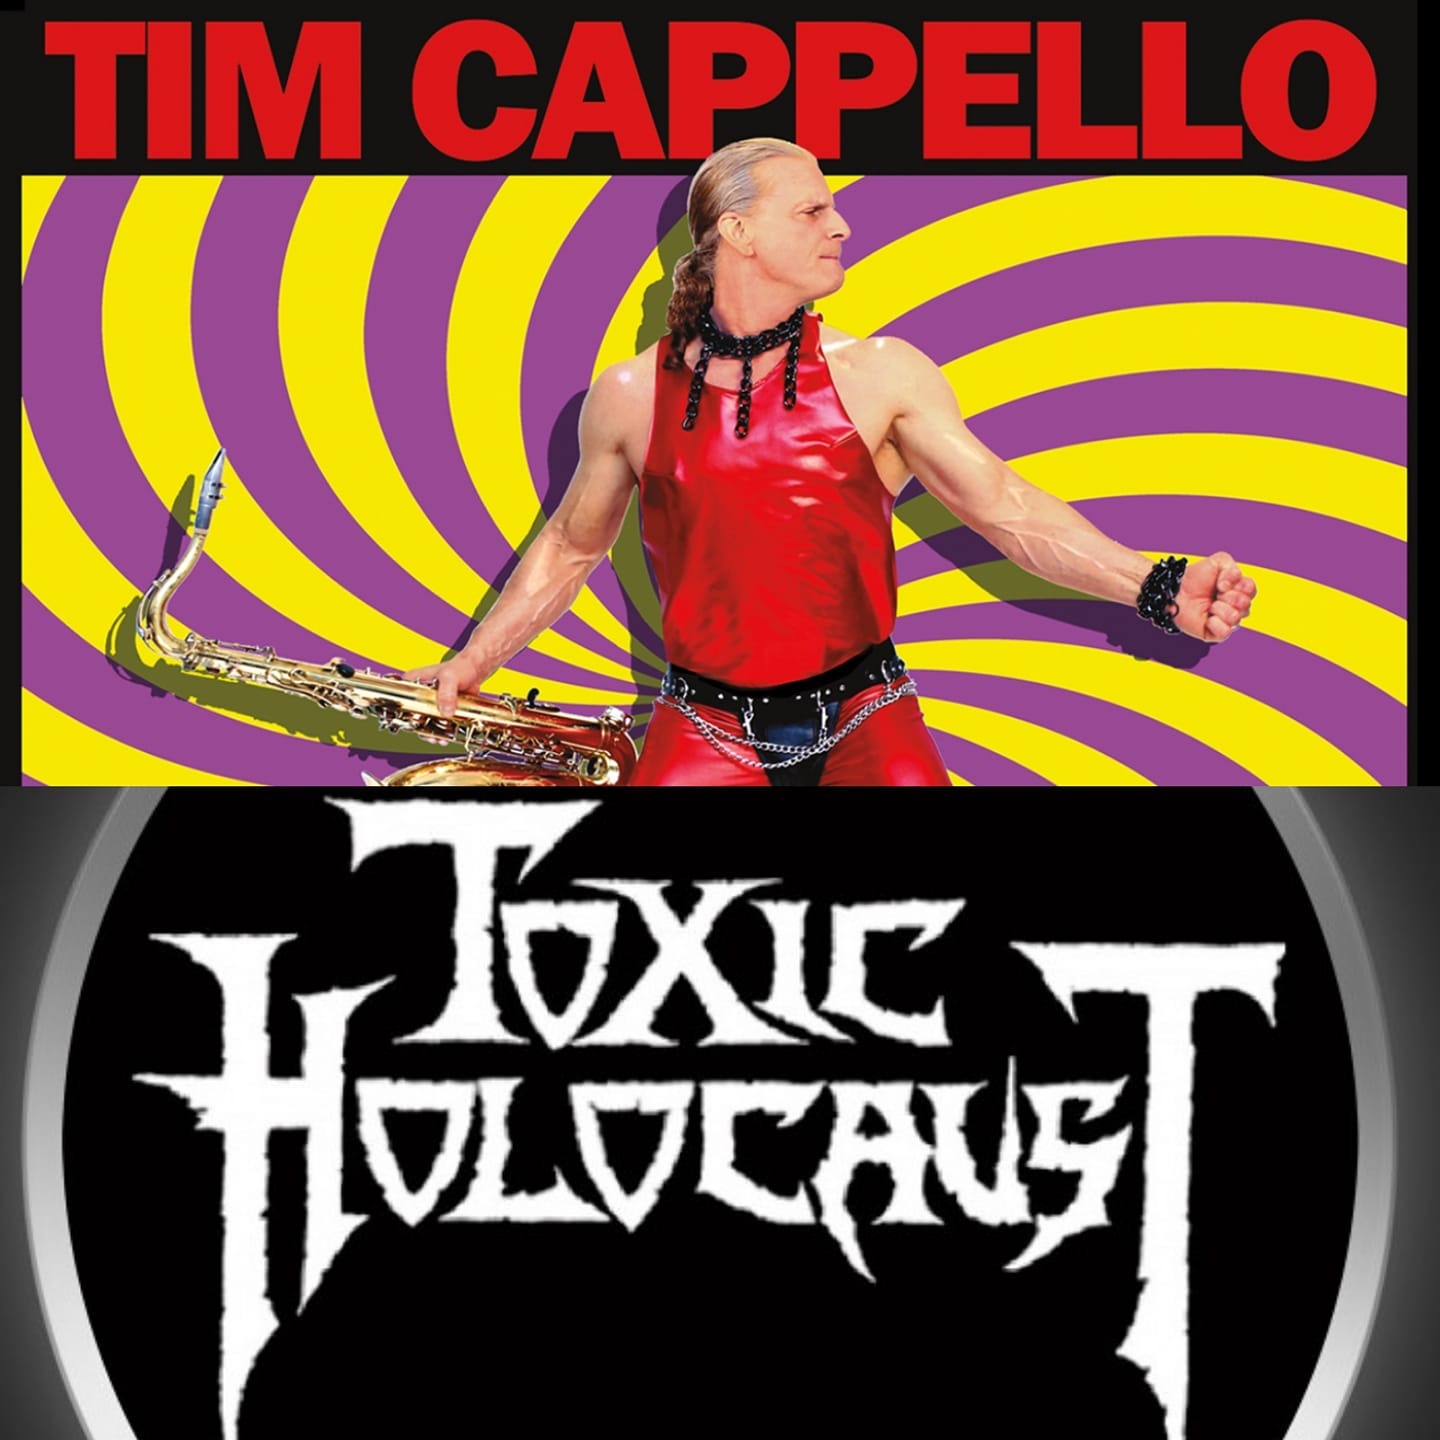 Day 2 Anniversary Party w/ TOXIC HOLOCAUST & TIM CAPPELLO